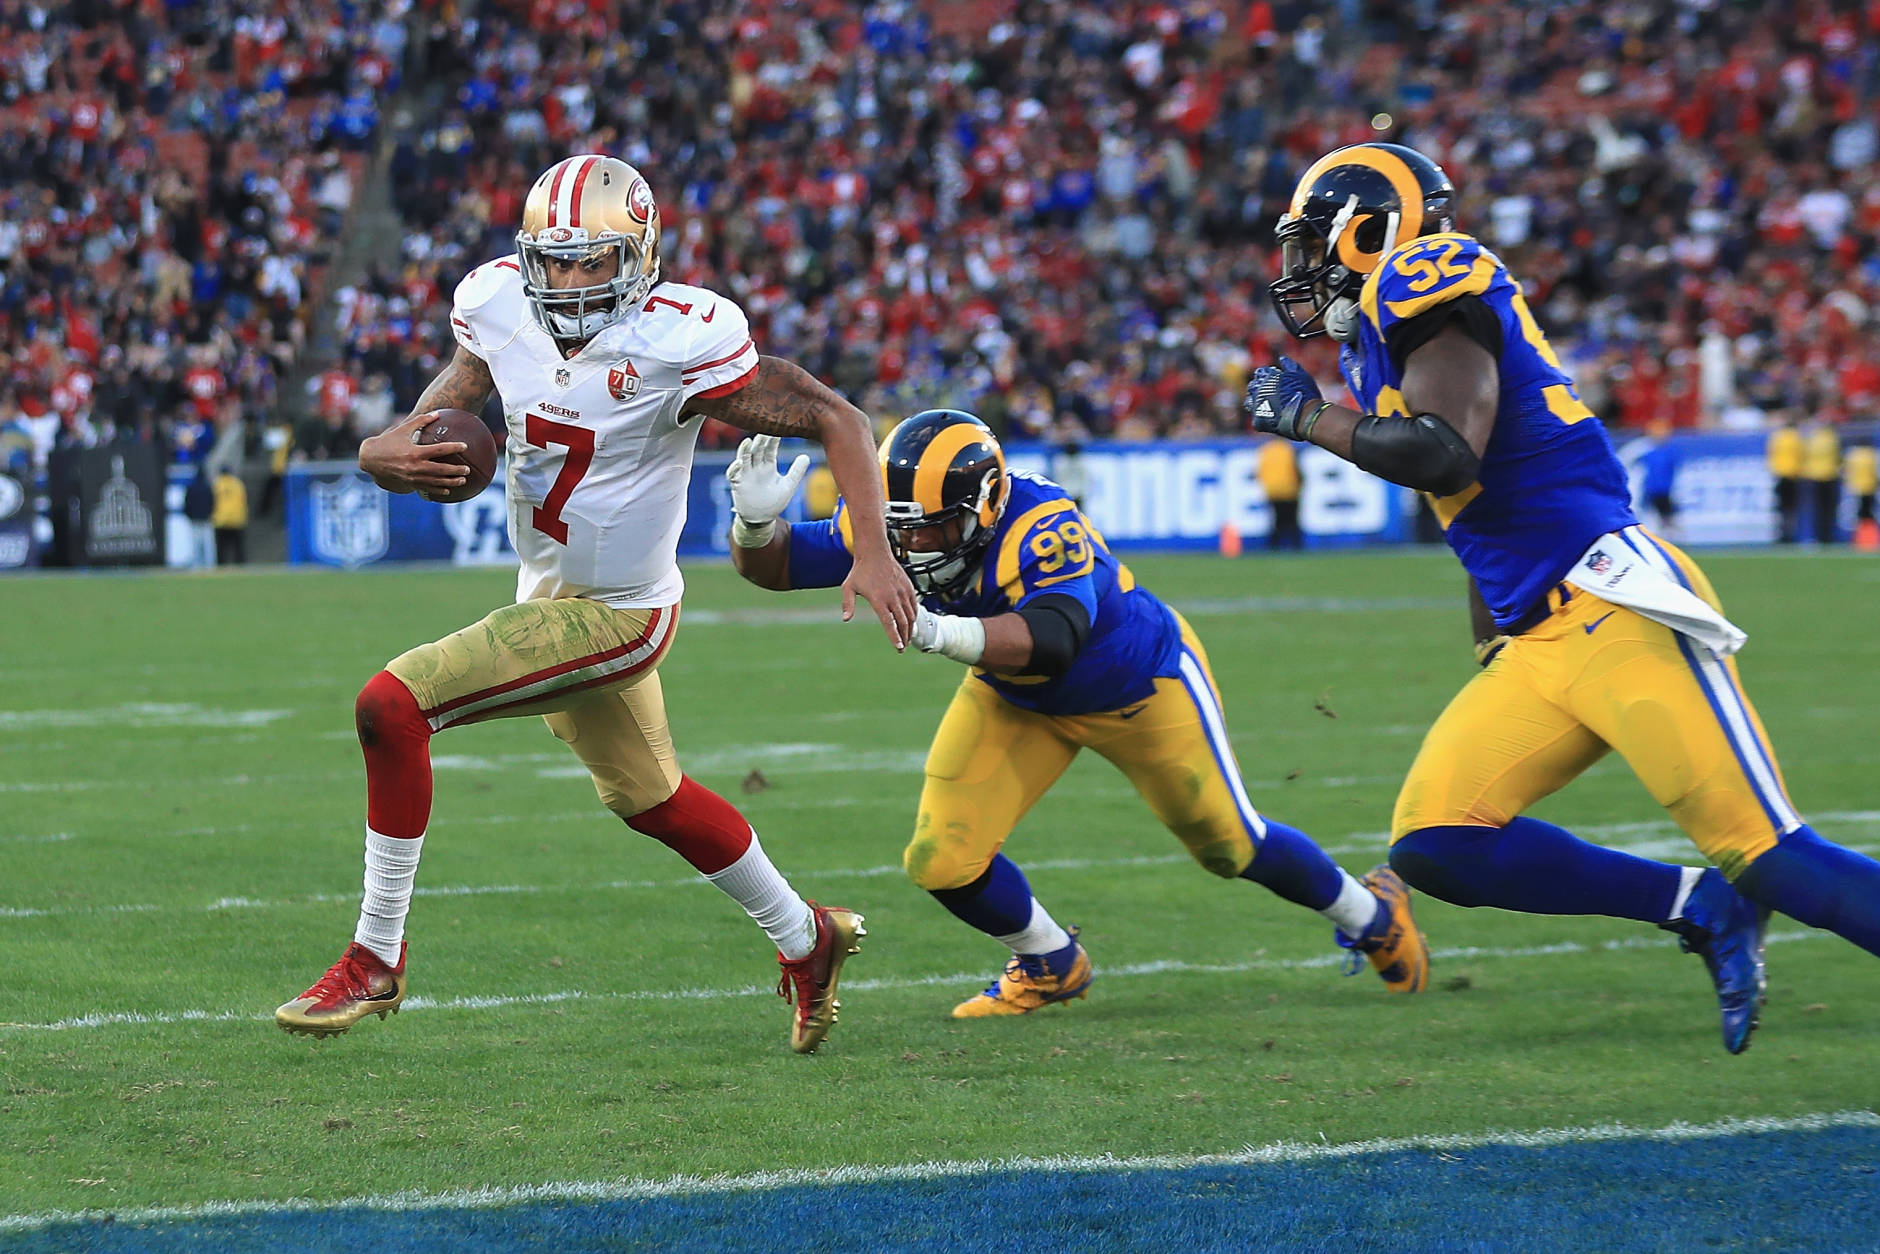 LOS ANGELES, CA - DECEMBER 24:  Colin Kaepernick #7 of the San Francisco 49ers rushes for a 13-yard touchdown during the fourth quarter as Aaron Donald #99 and Alec Ogletree #52 of the Los Angeles Rams attempt to tackle him at Los Angeles Memorial Coliseum on December 24, 2016 in Los Angeles, California.  (Photo by Sean M. Haffey/Getty Images)